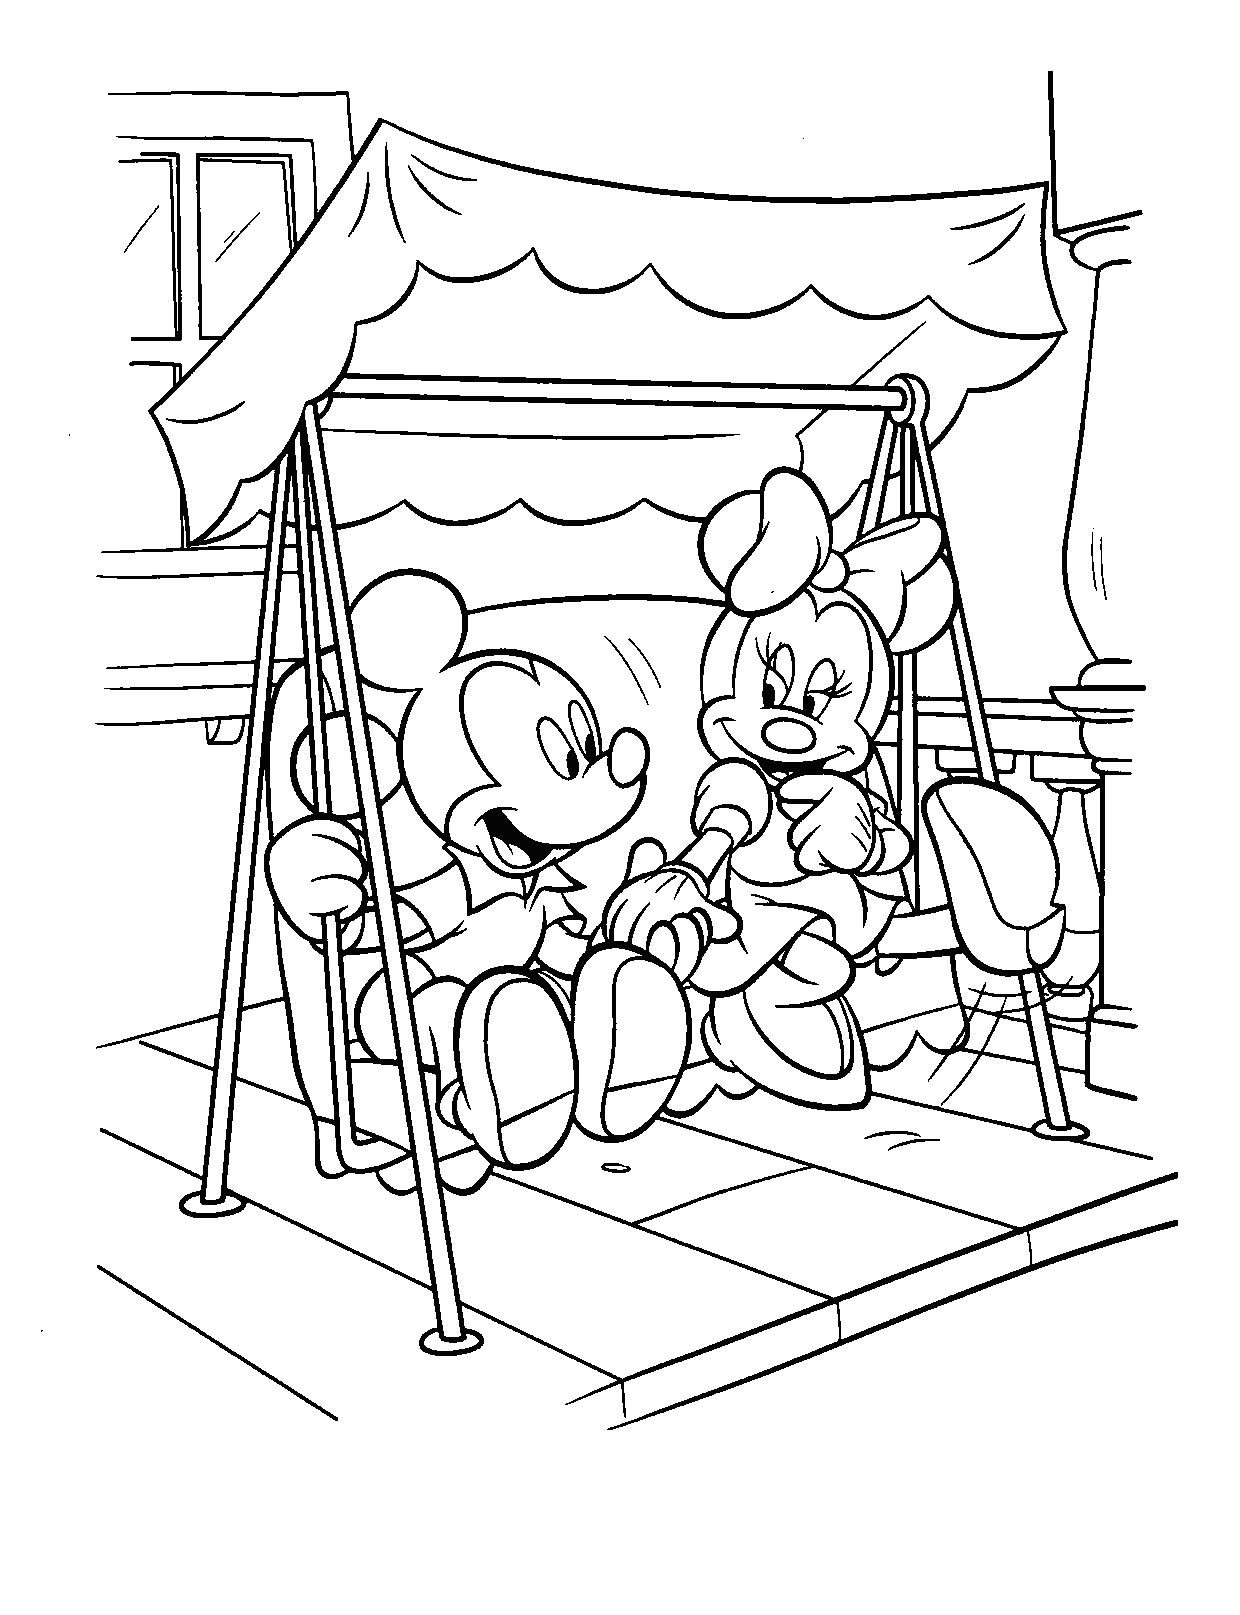 mickey mouse toddler coloring pages printable goofy coloring pages for kids toddler coloring pages mouse mickey